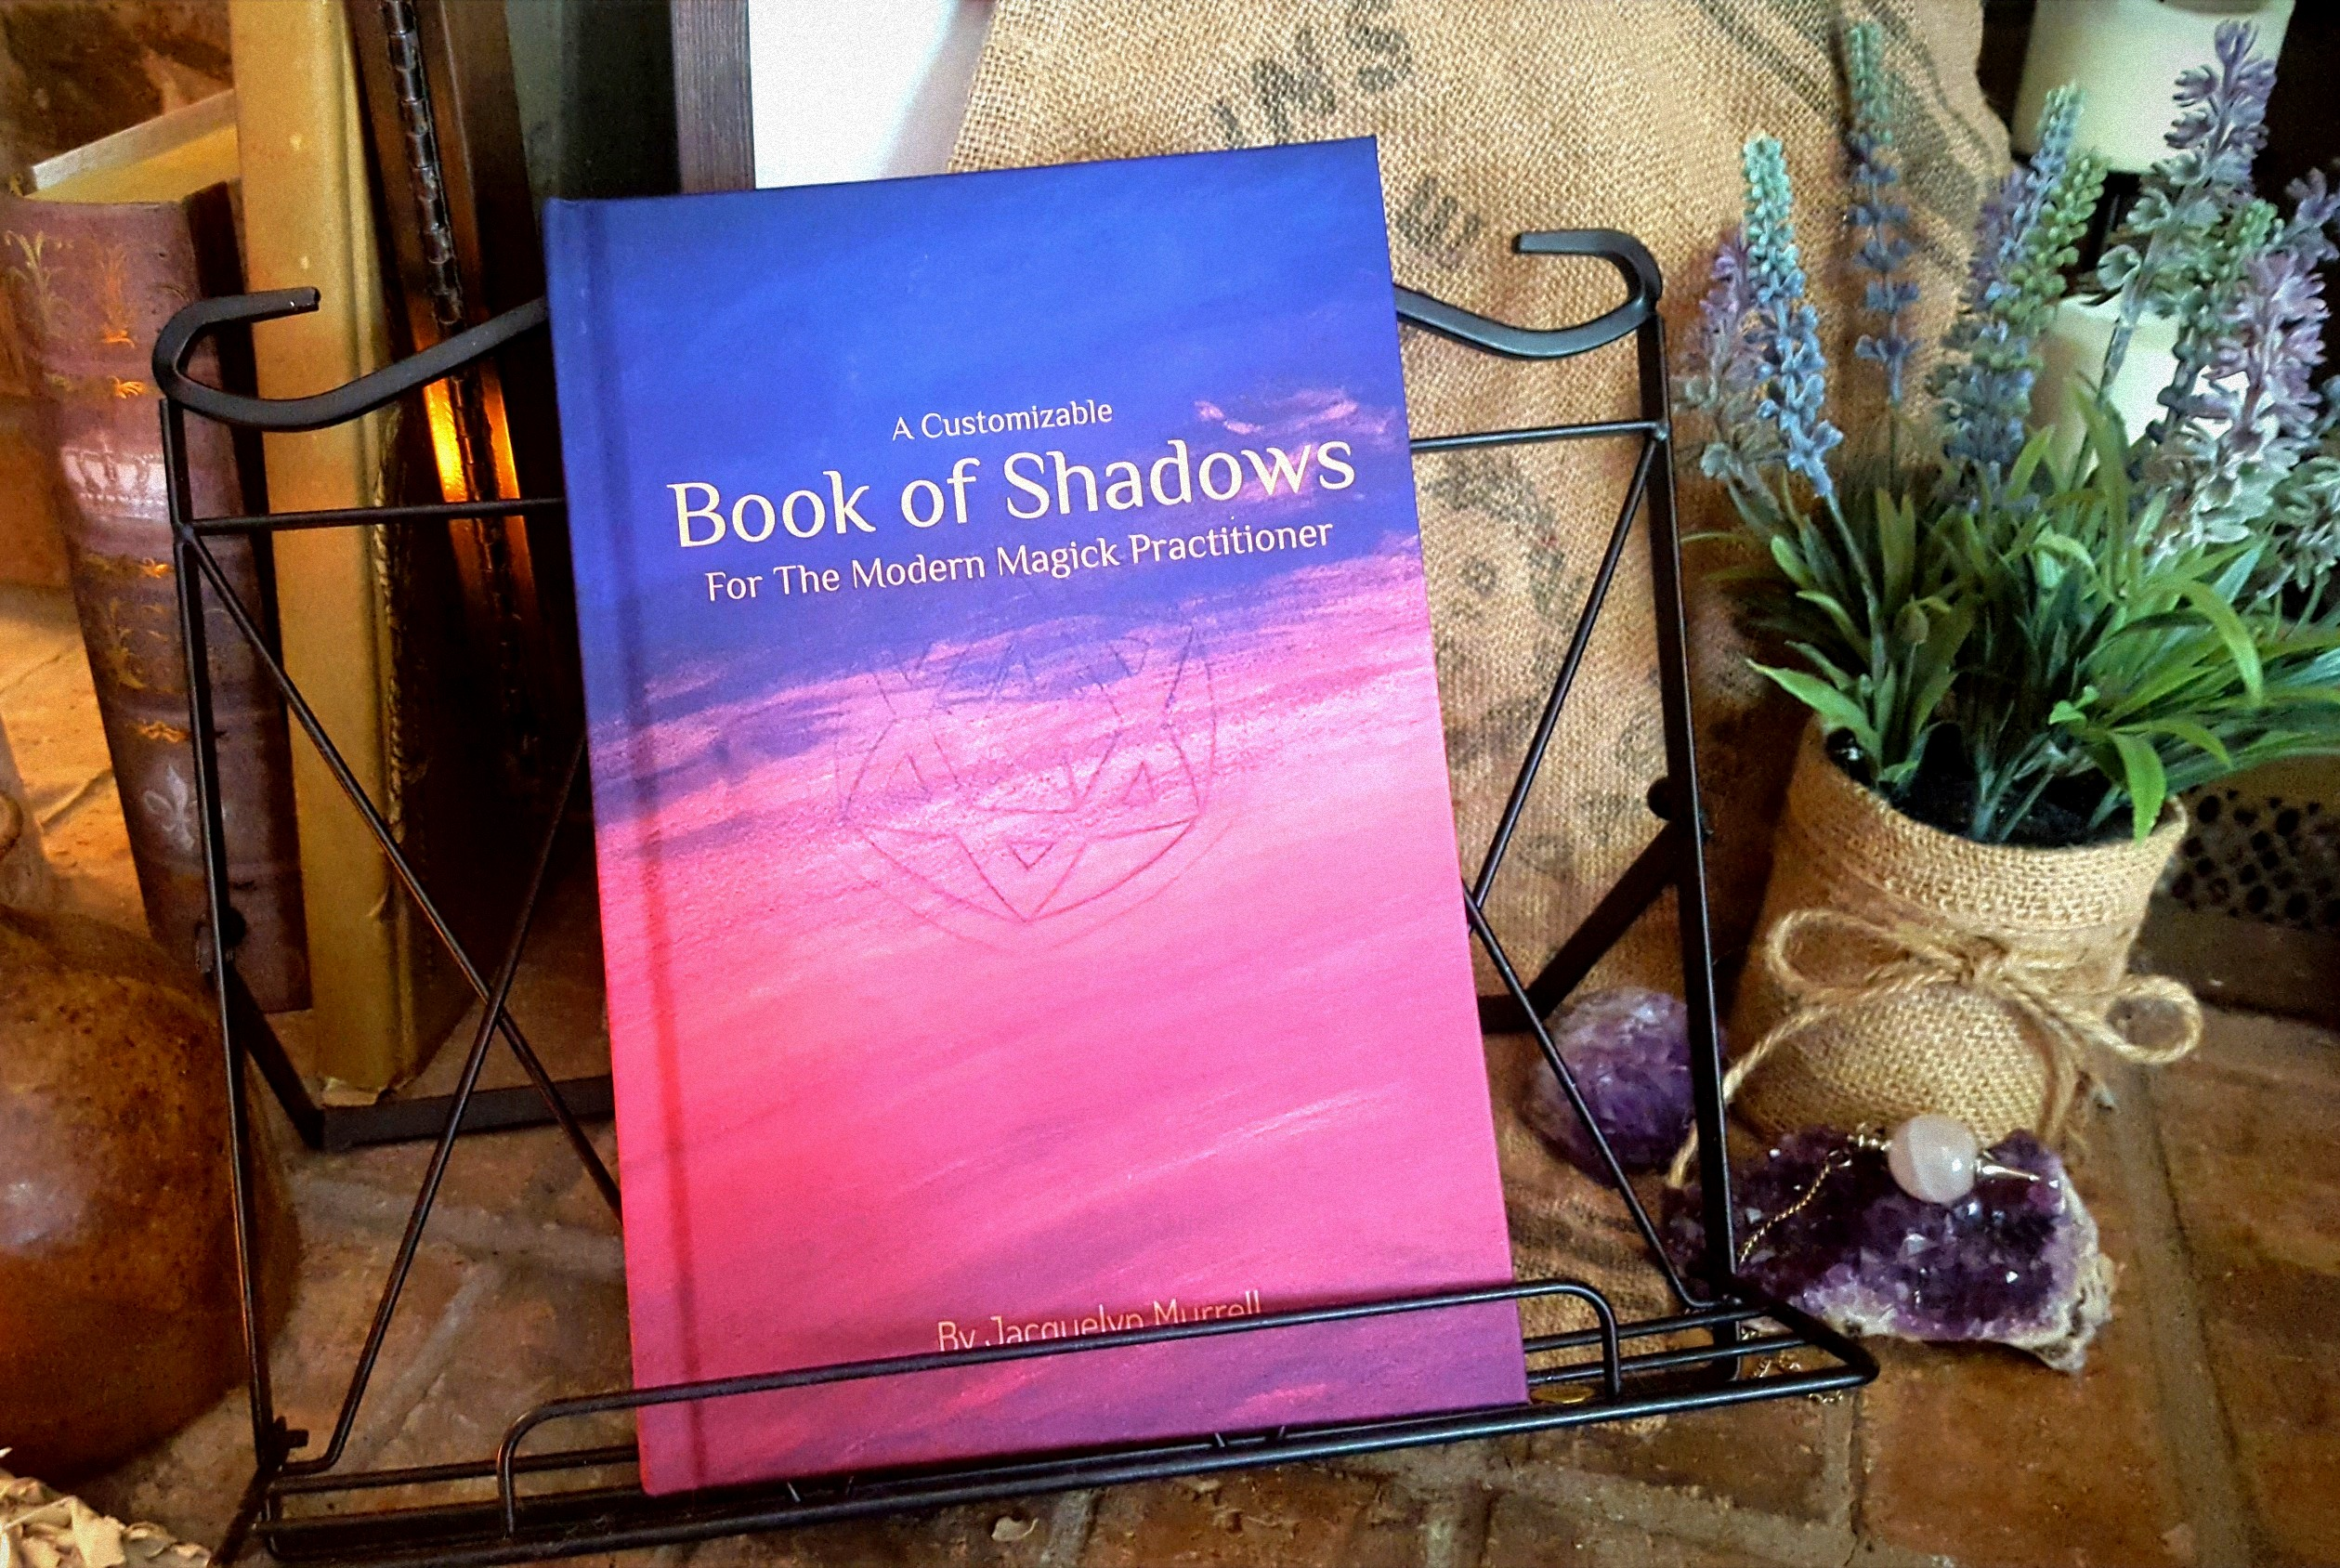 A Customizable Book of Shadows for the Modern Magick Practitioner